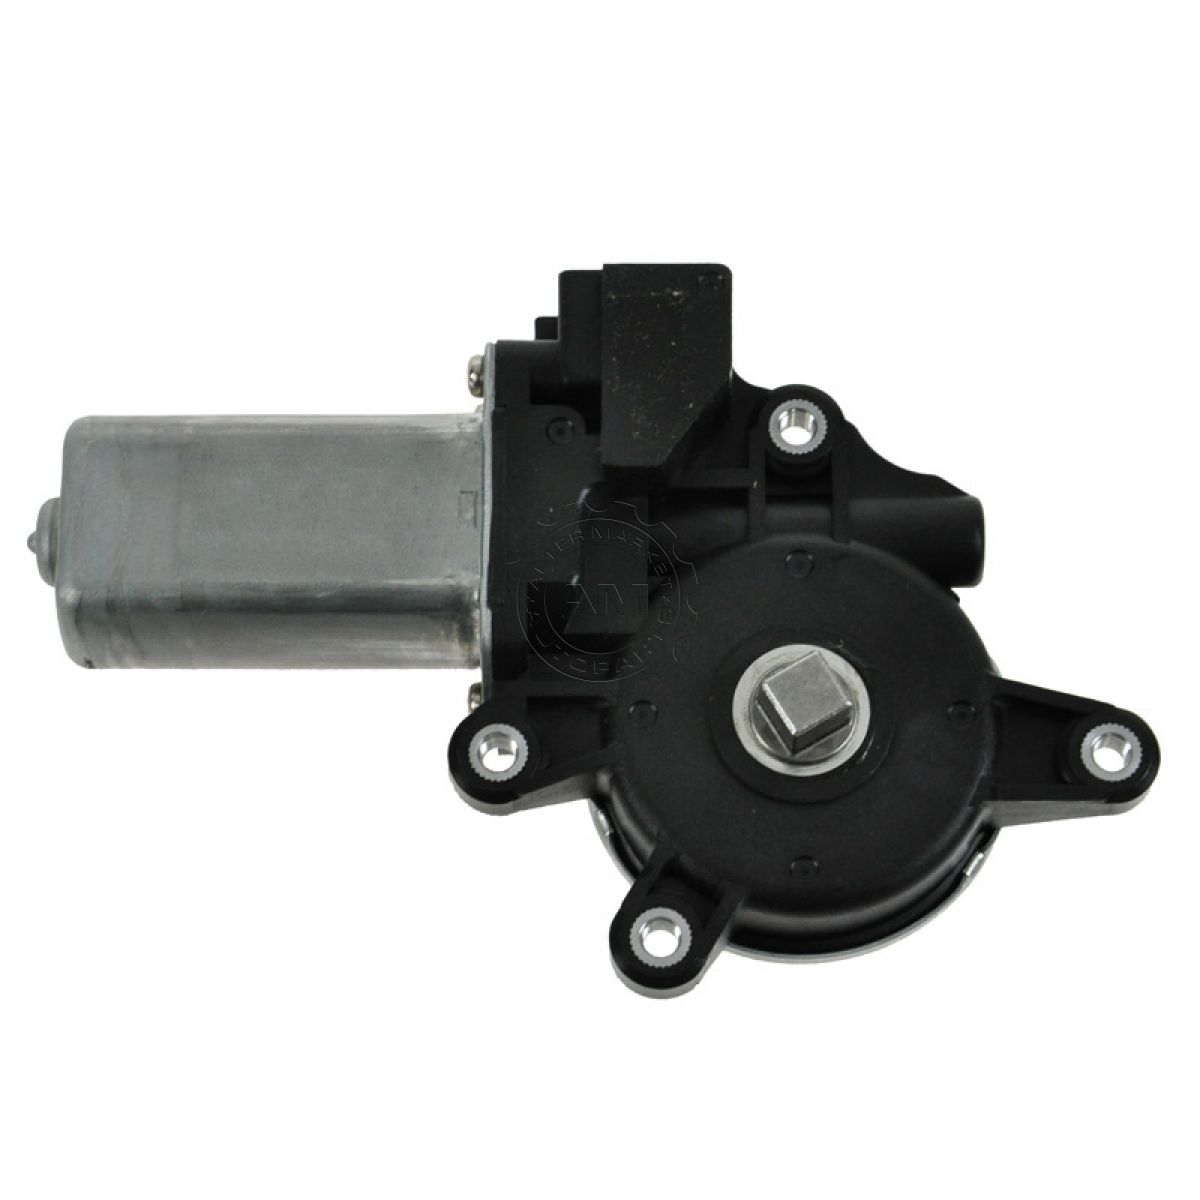 dorman power window motor passenger side right for altima frontier